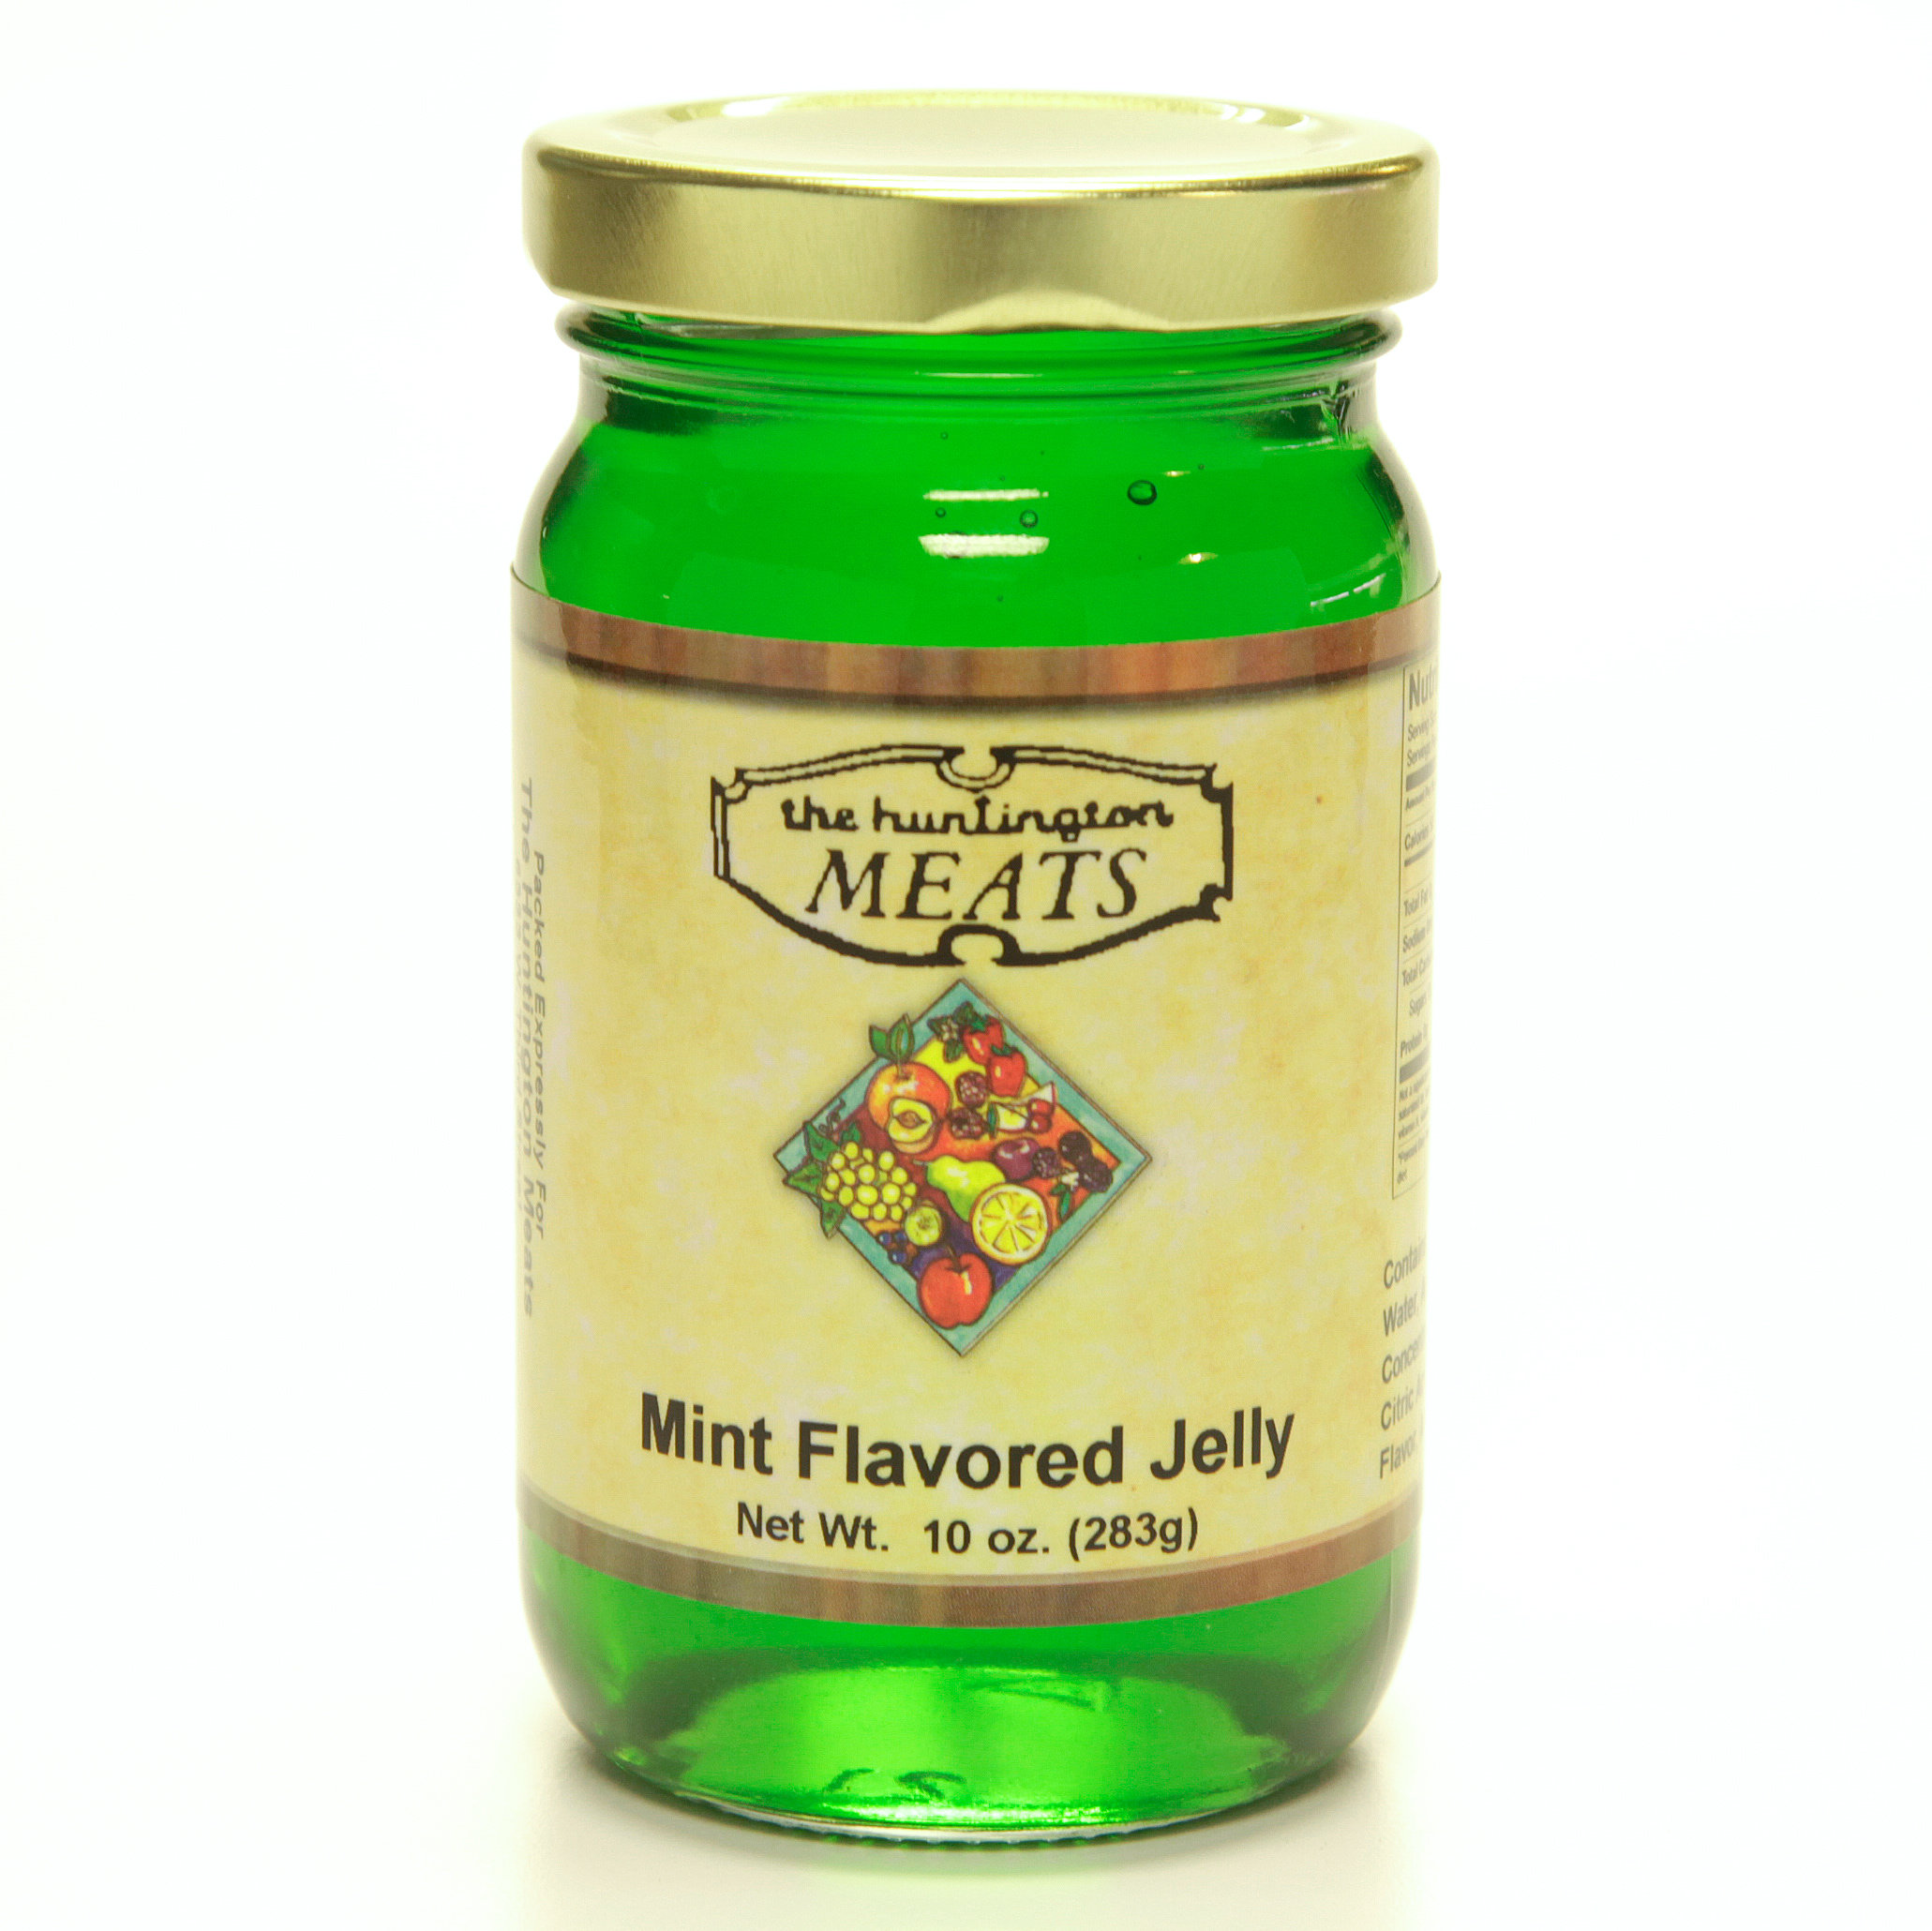 Mint Flavored Jelly, 10 oz. 00021